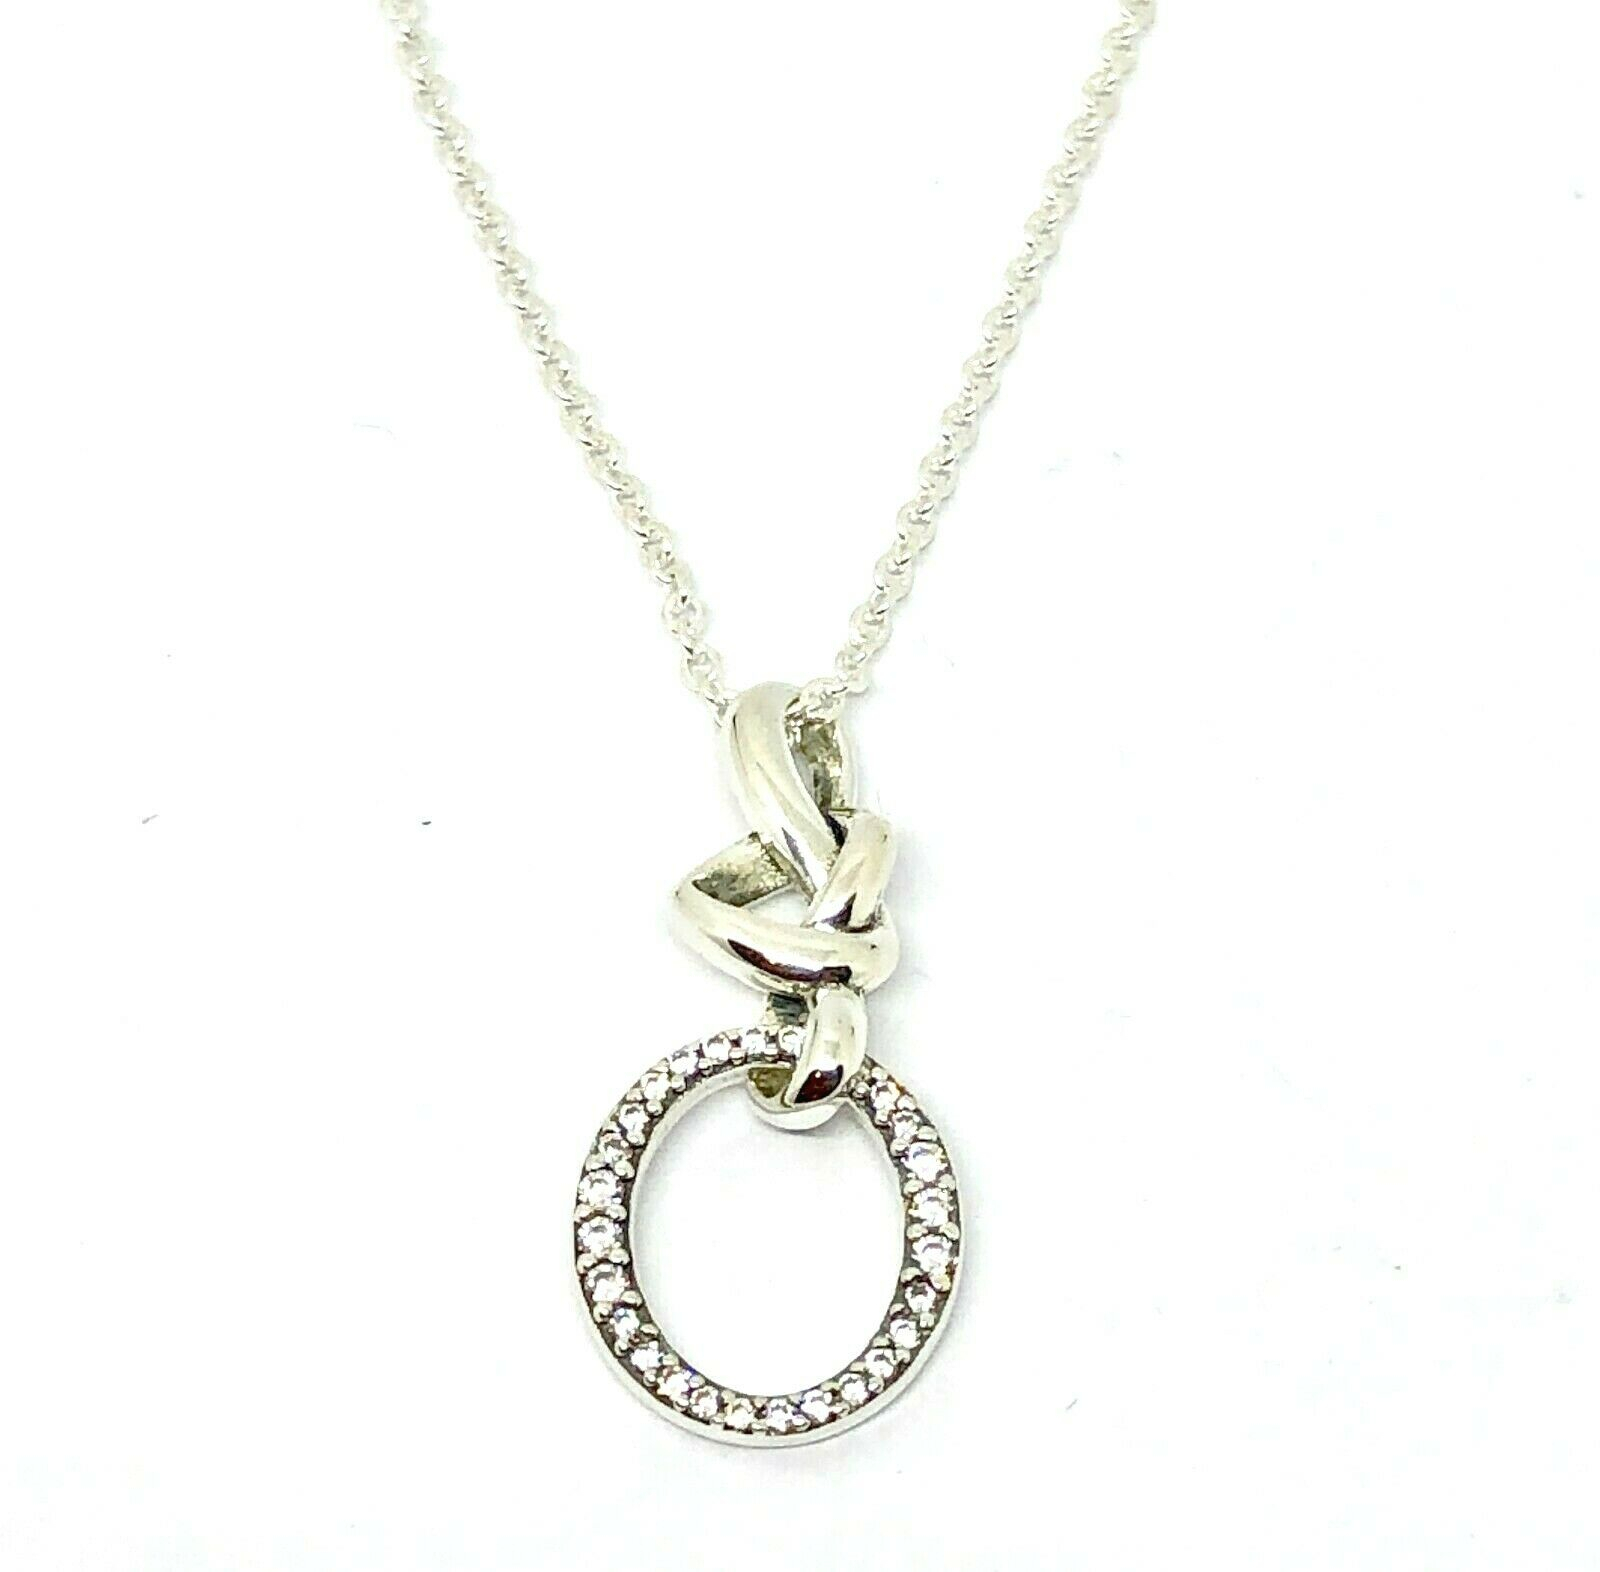 Genuine Authentic Pandora Knotted Heart Necklace 60Cm Pertaining To Latest Pandora Moments Snake Chain Necklaces (View 23 of 25)